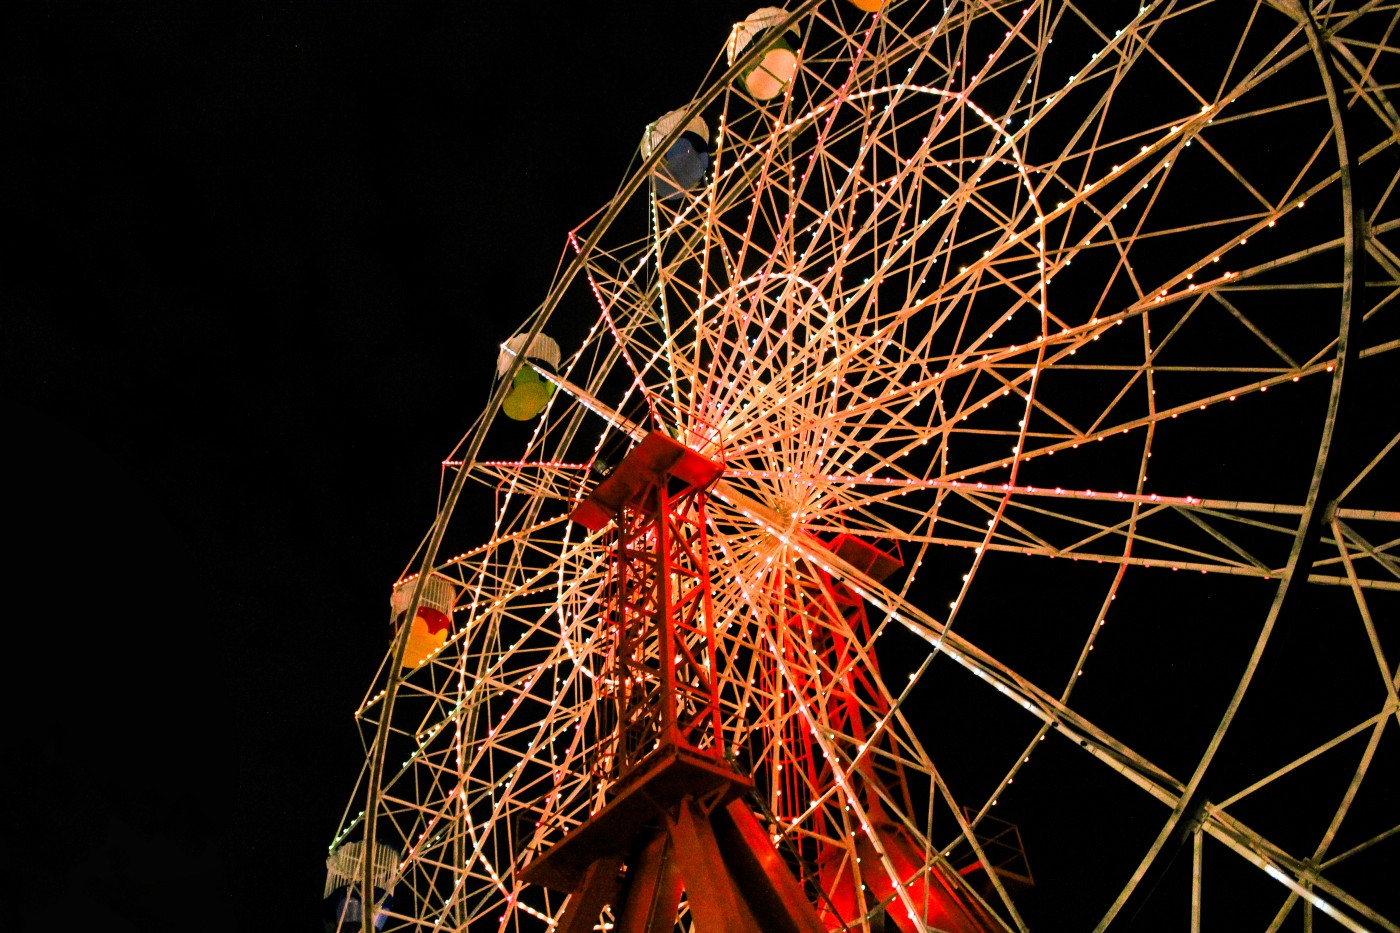 A lit-up Ferris wheel against the night sky.